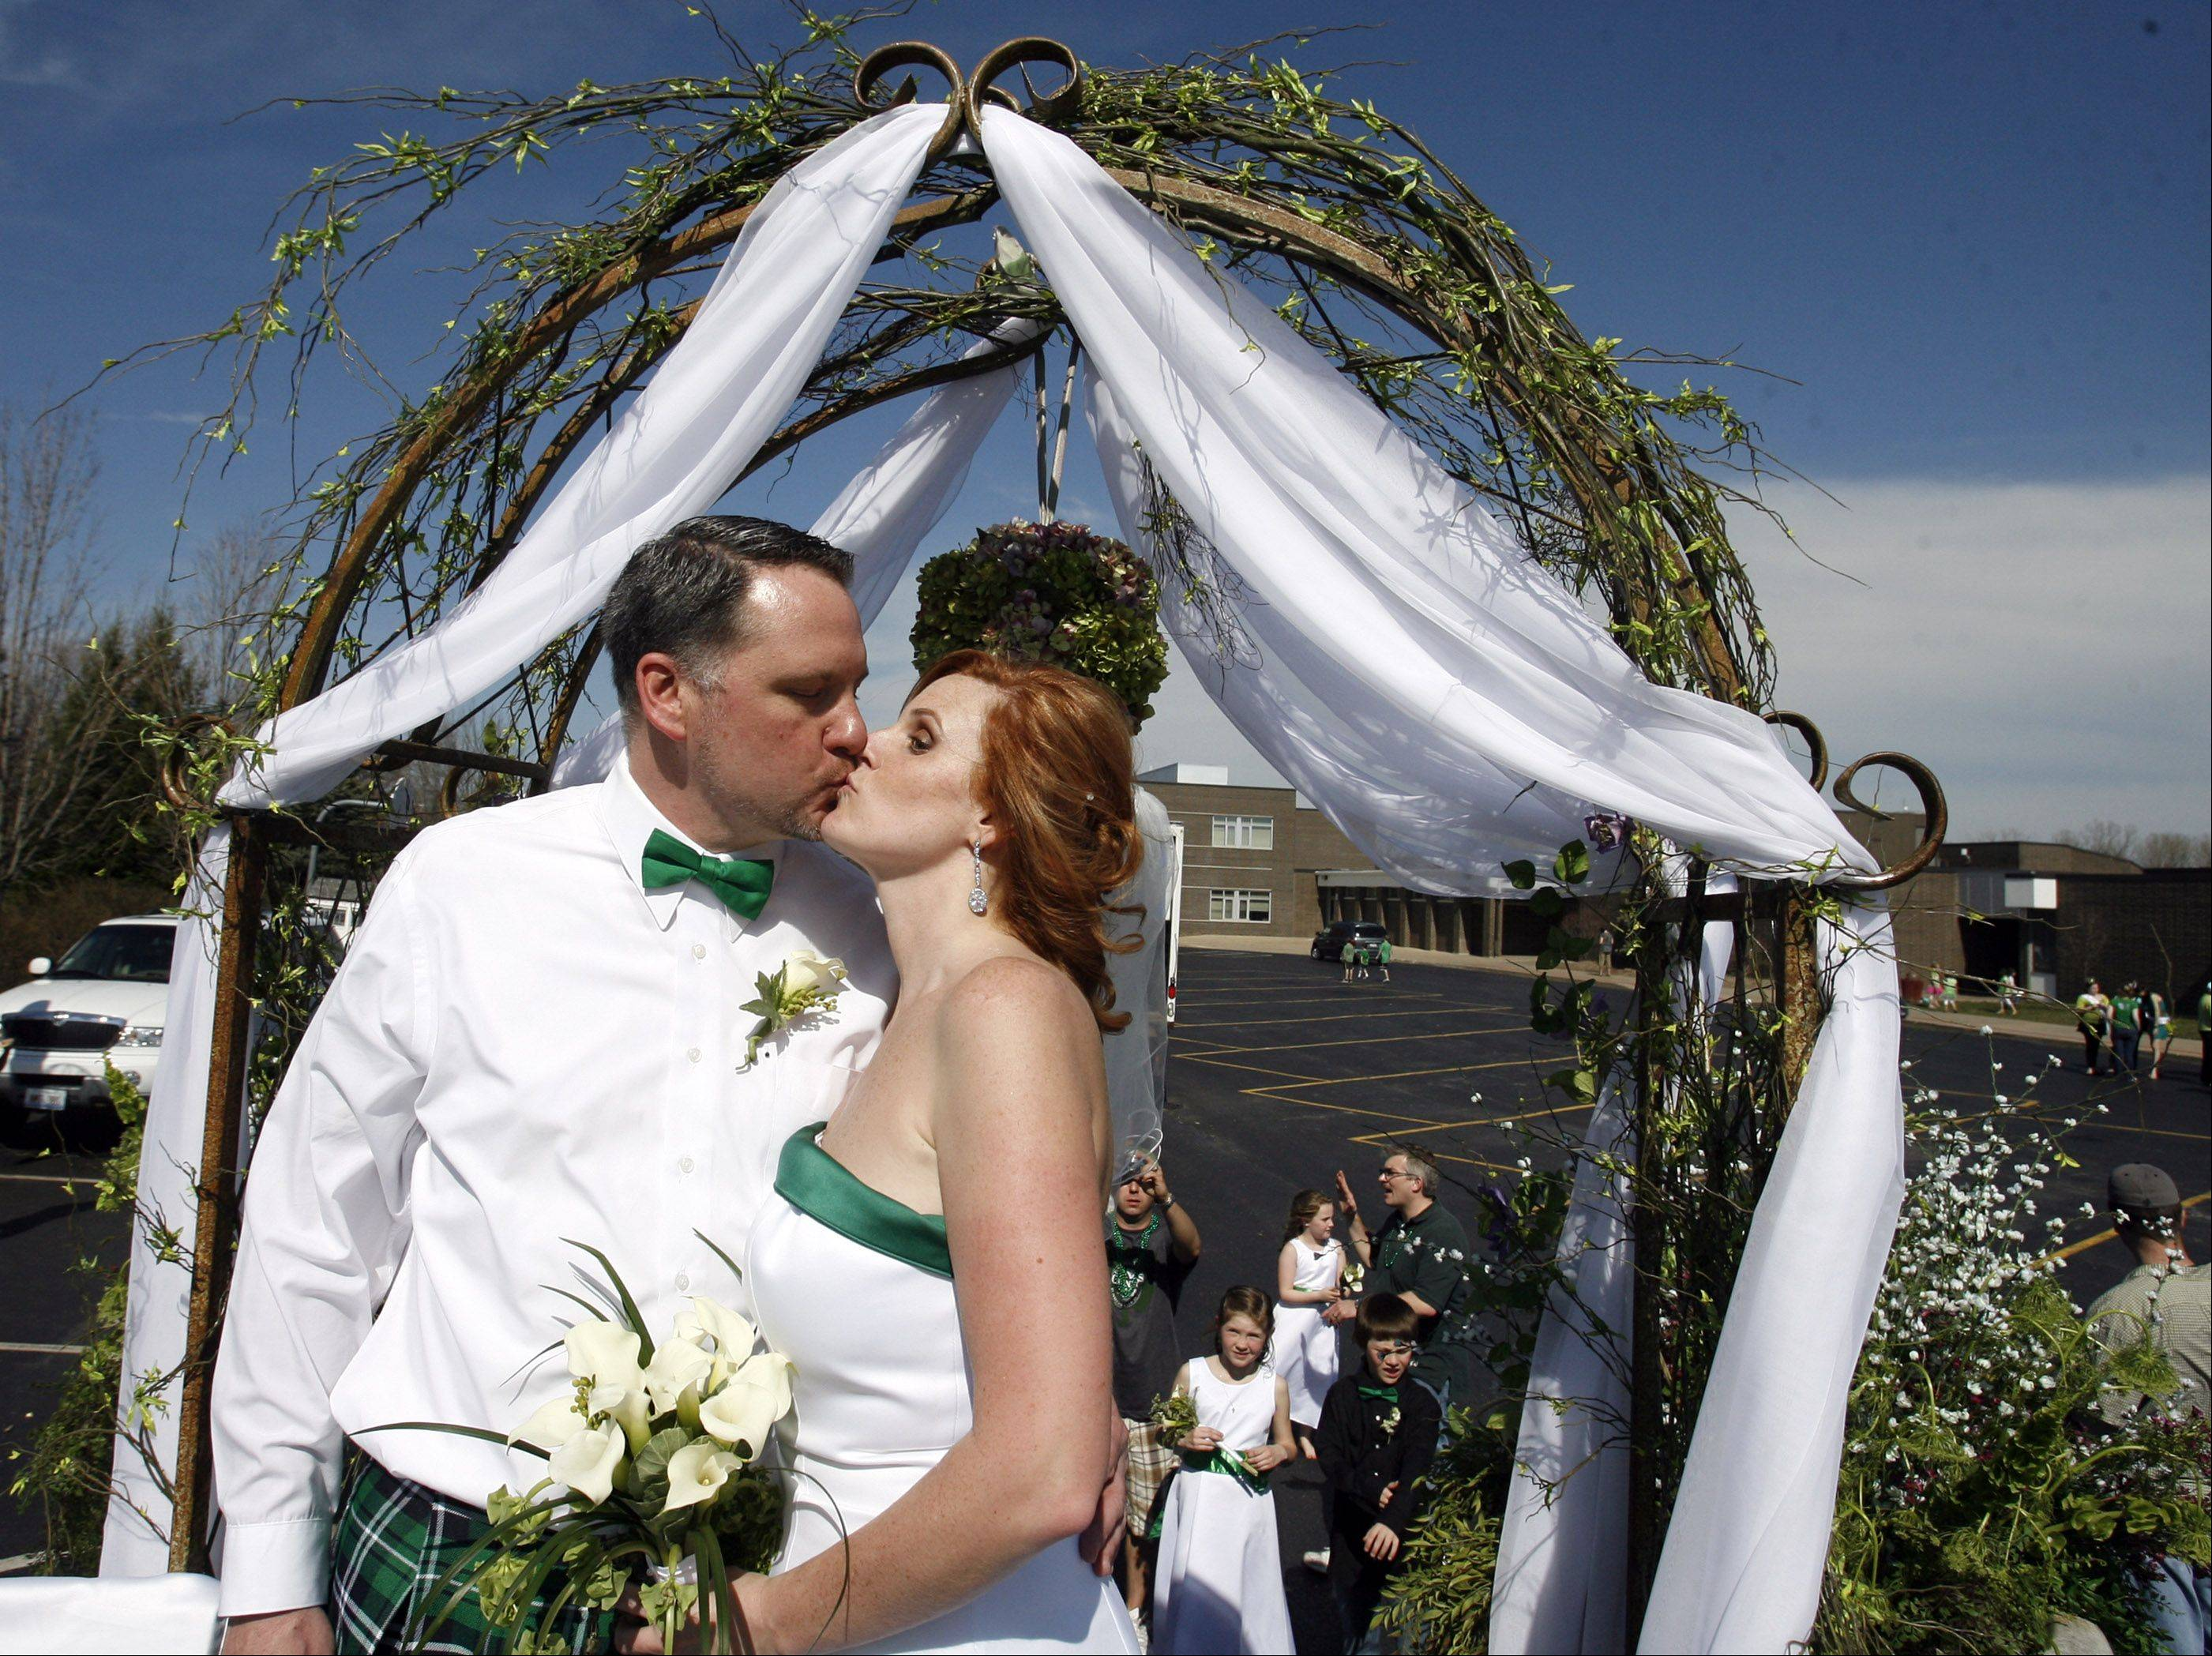 Tara Teschky and Paul Quinn of Libertyville kiss after getting married on a float during the Lake Villa St. Patrick's Day parade on Saturday, March 17th.